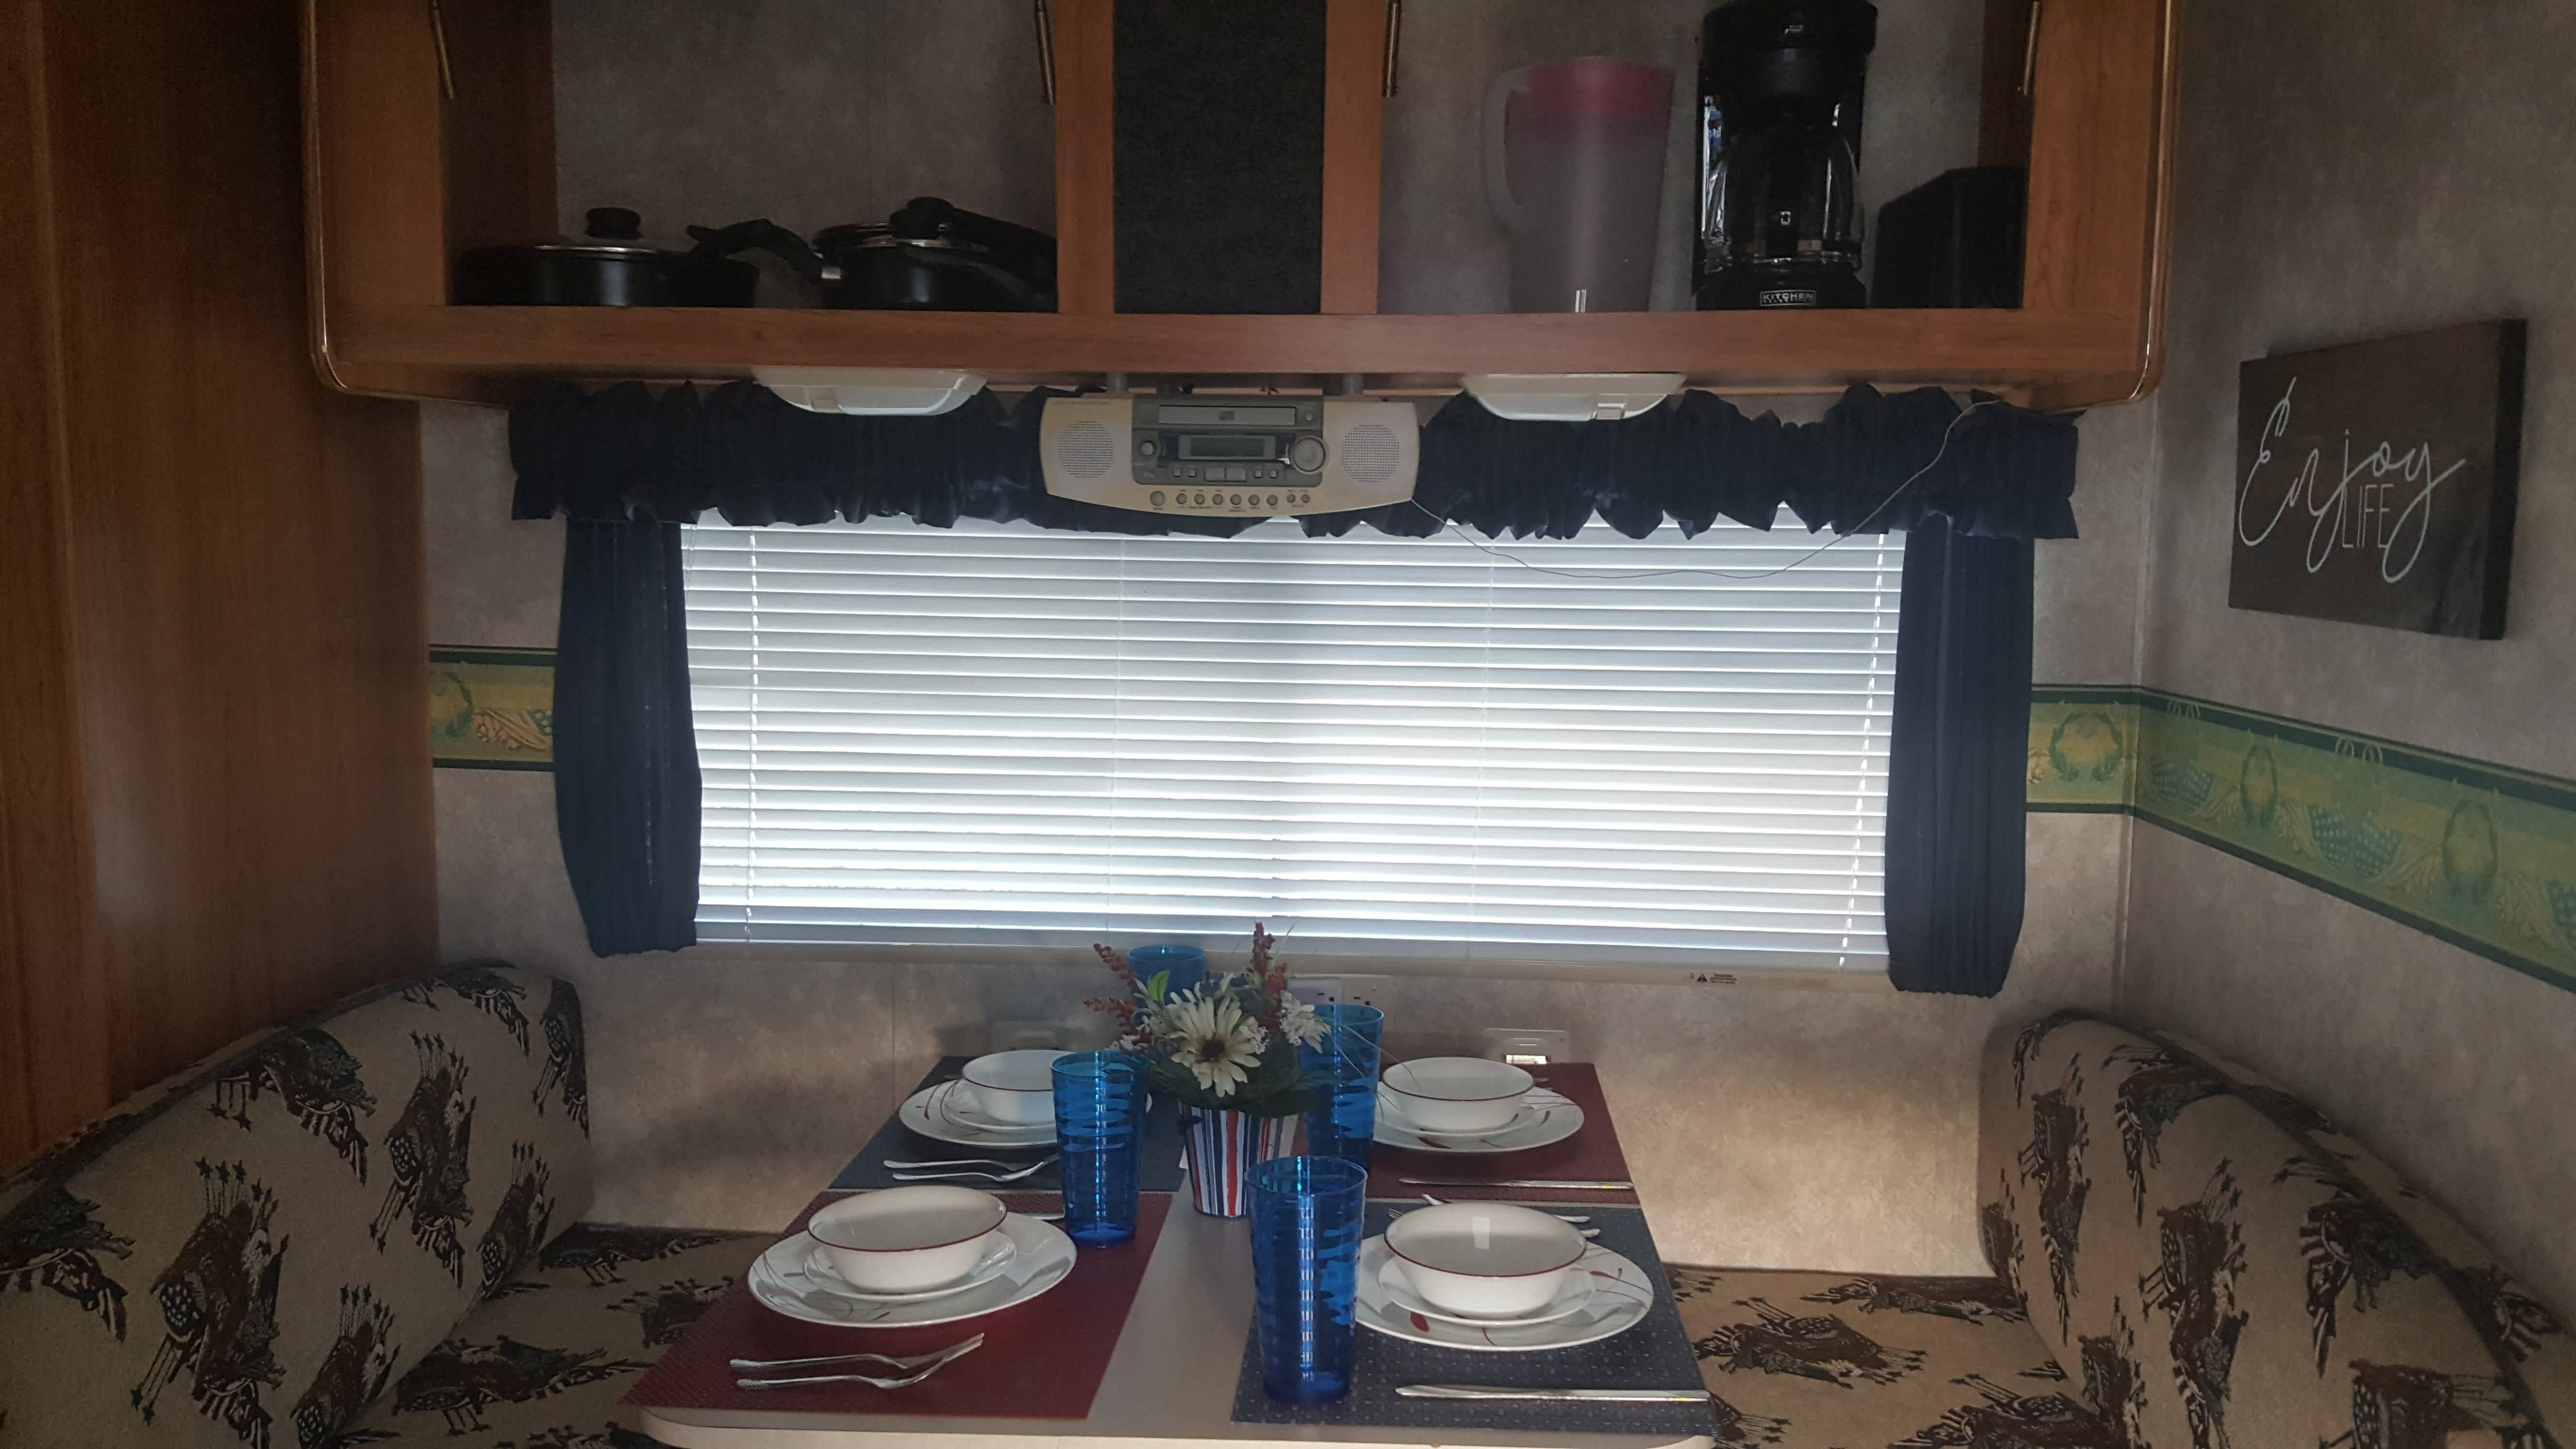 Dinning Table for four people. Pots and pans top left, Coffey pot Toaster and Pitcher top Right. Coachmen Spirit Of America 2003